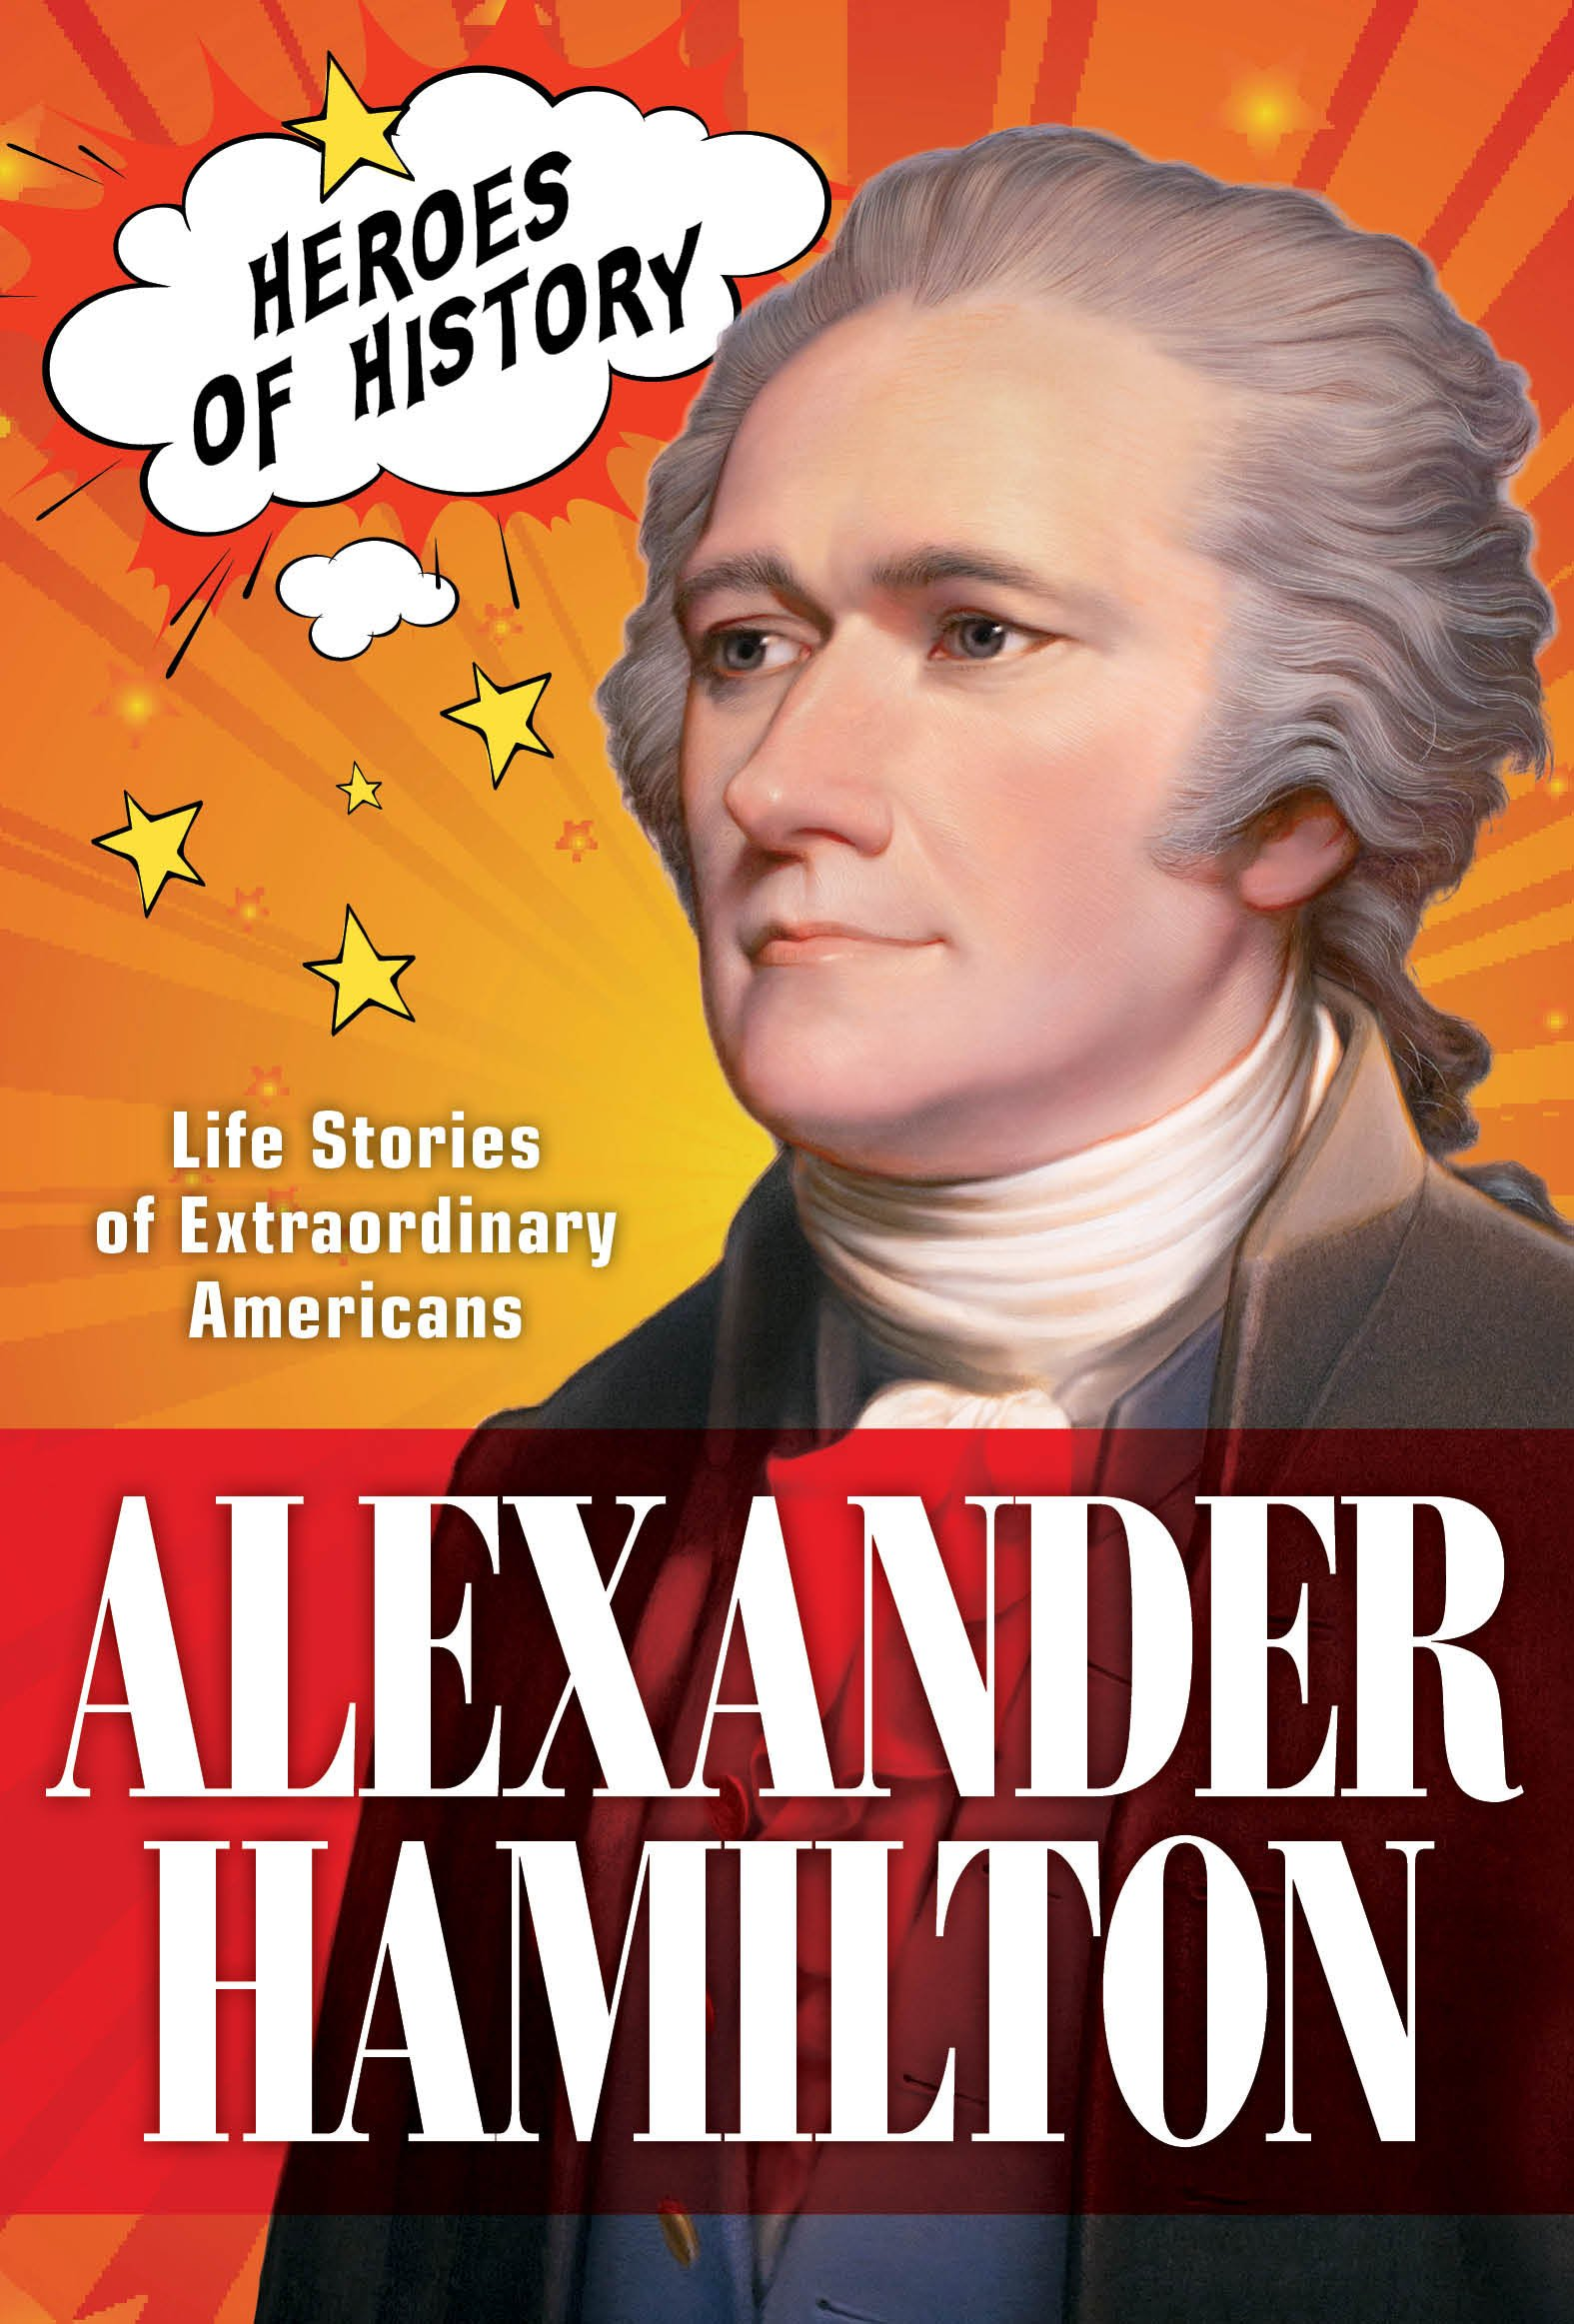 Alexander Hamilton : Life Stories of Extraordinary Americans (TIME Heroes of History #1)